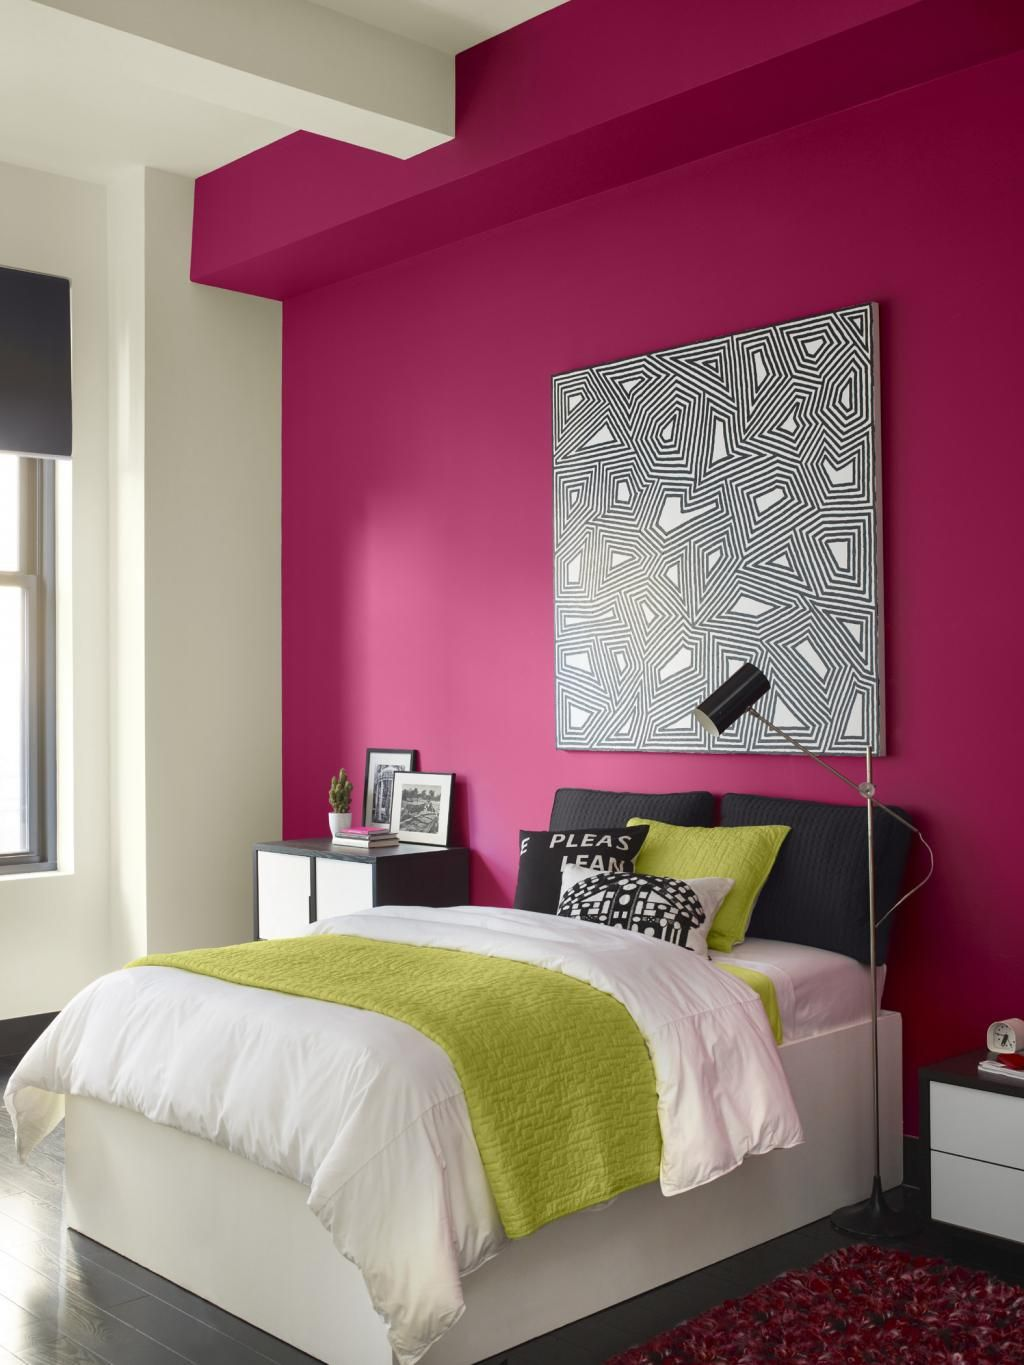 Interior Design Teen Bedroom Color Combination With Bright Pink ...